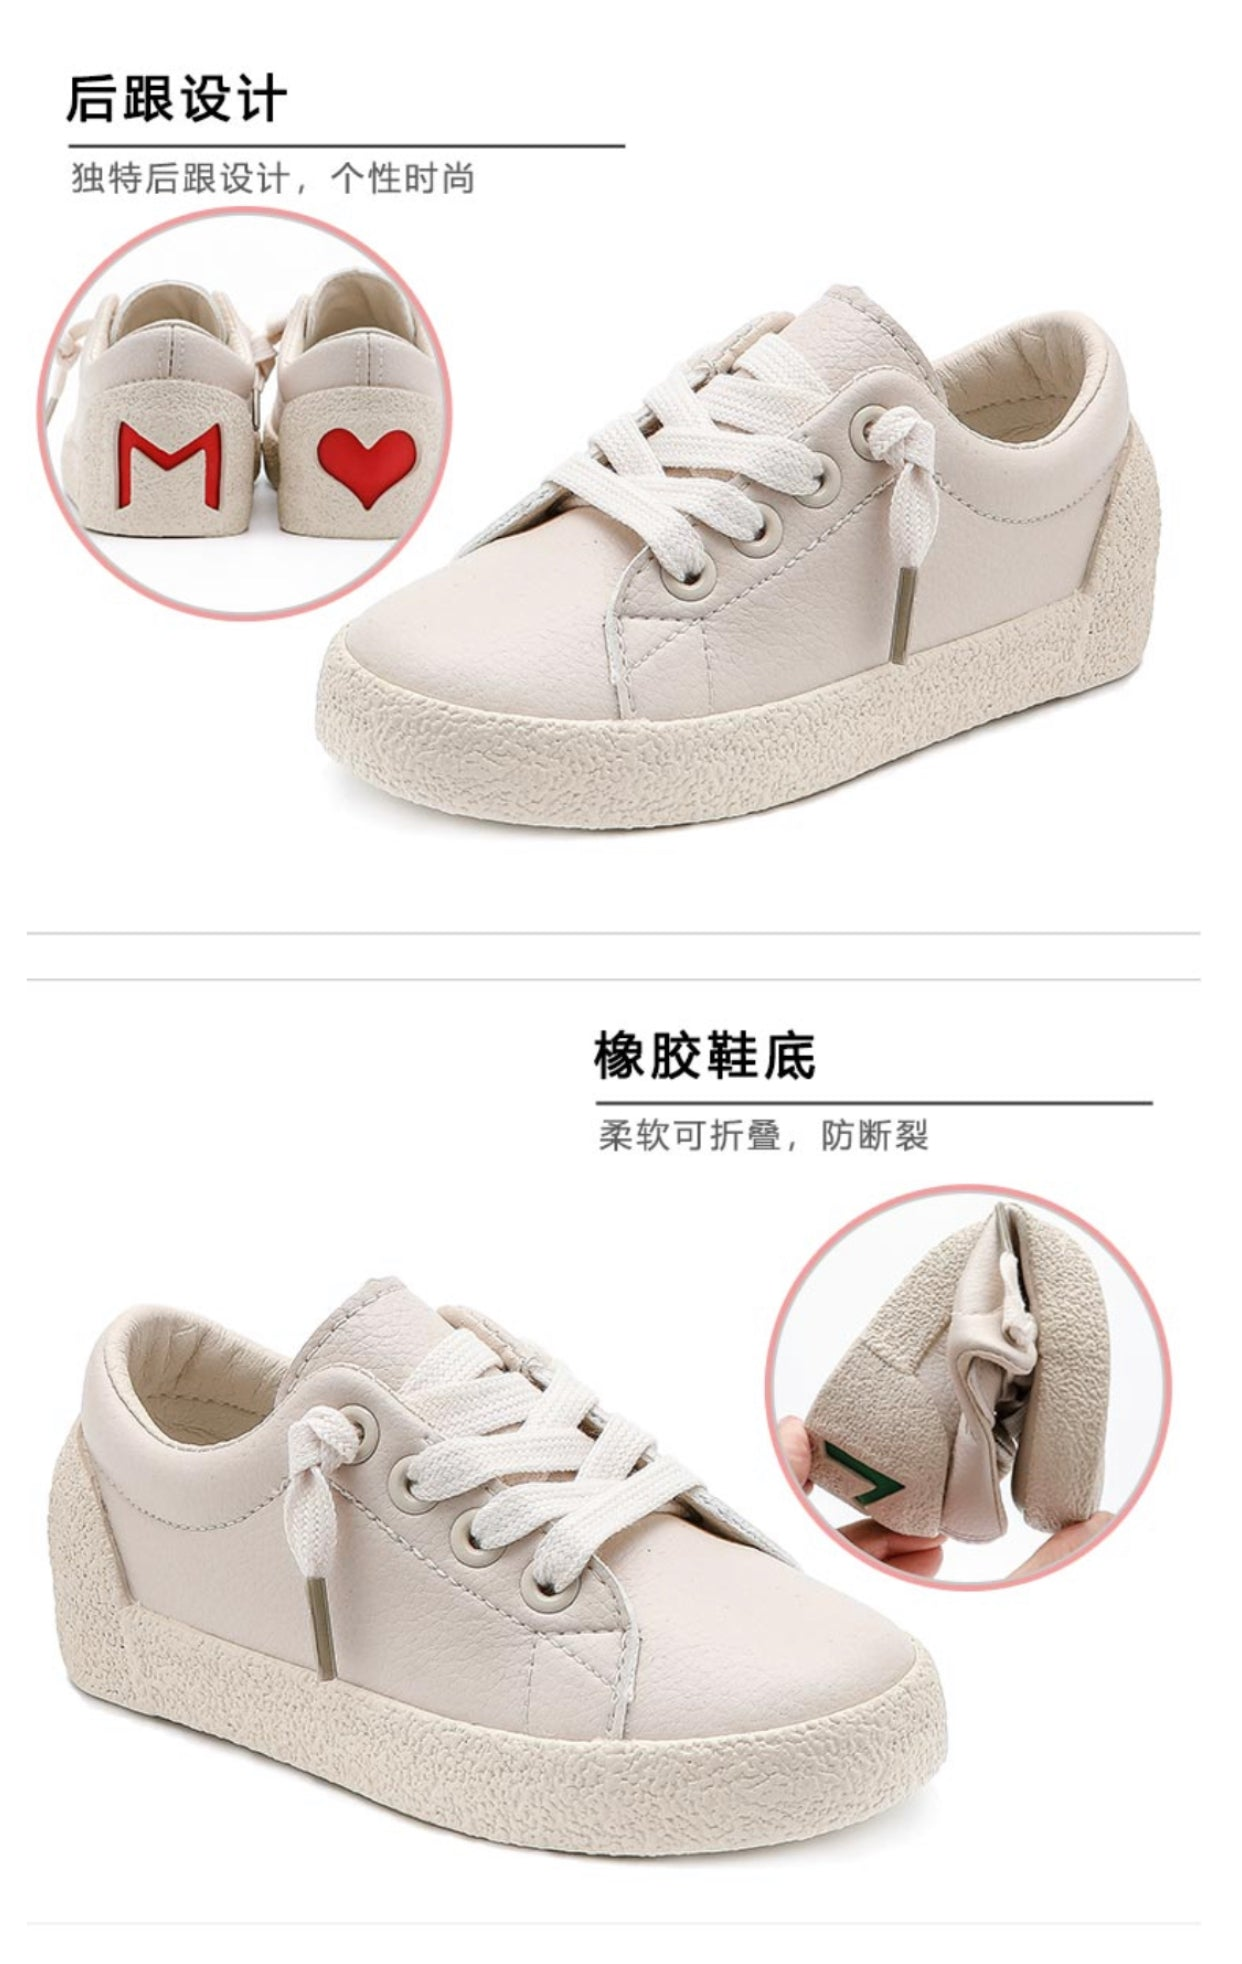 Mowa M-heart Light grey sneakers for kids